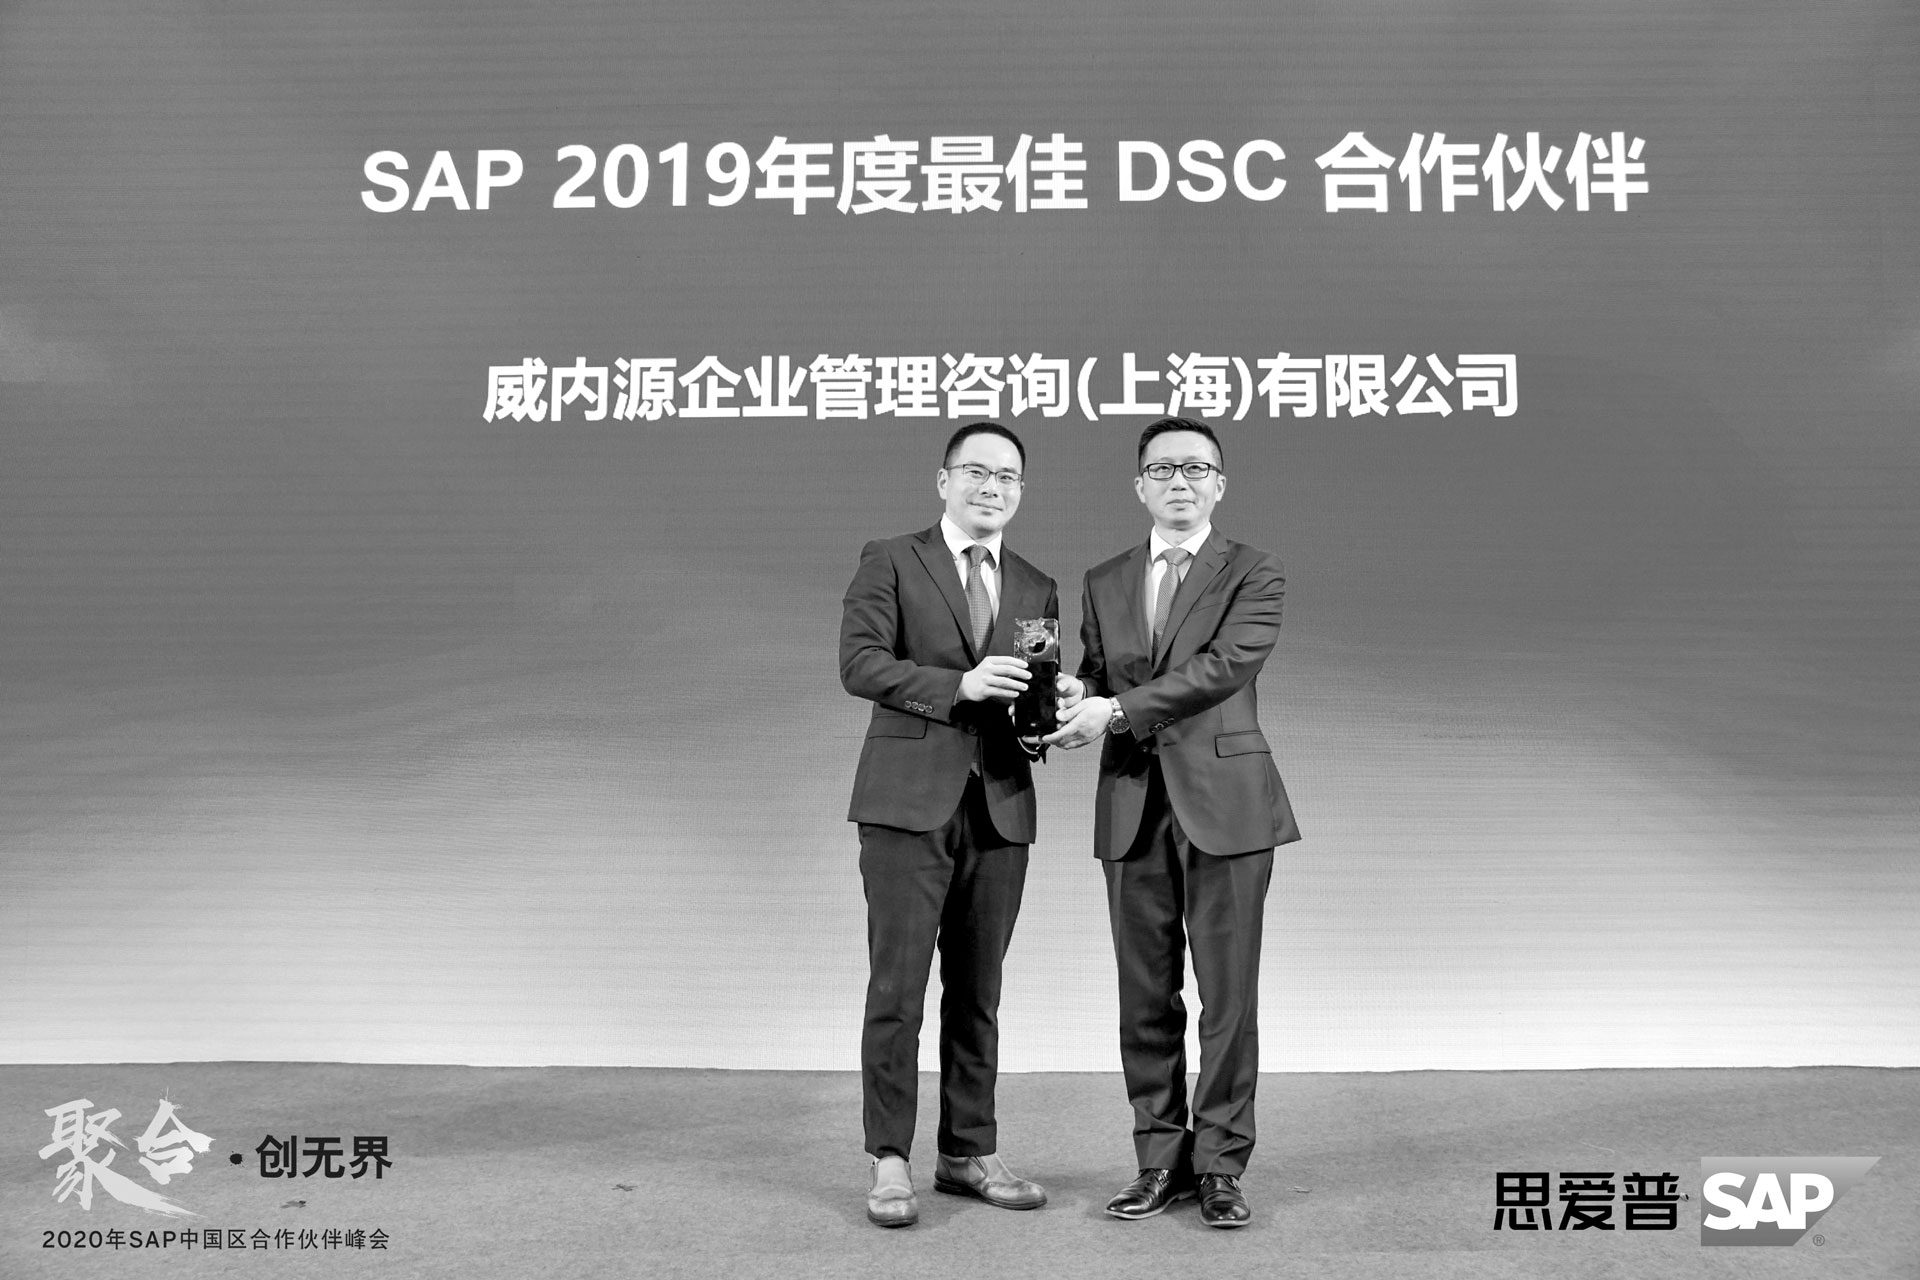 Westernacher Insights: Westernacher China's SAP partnership knows no bounds.